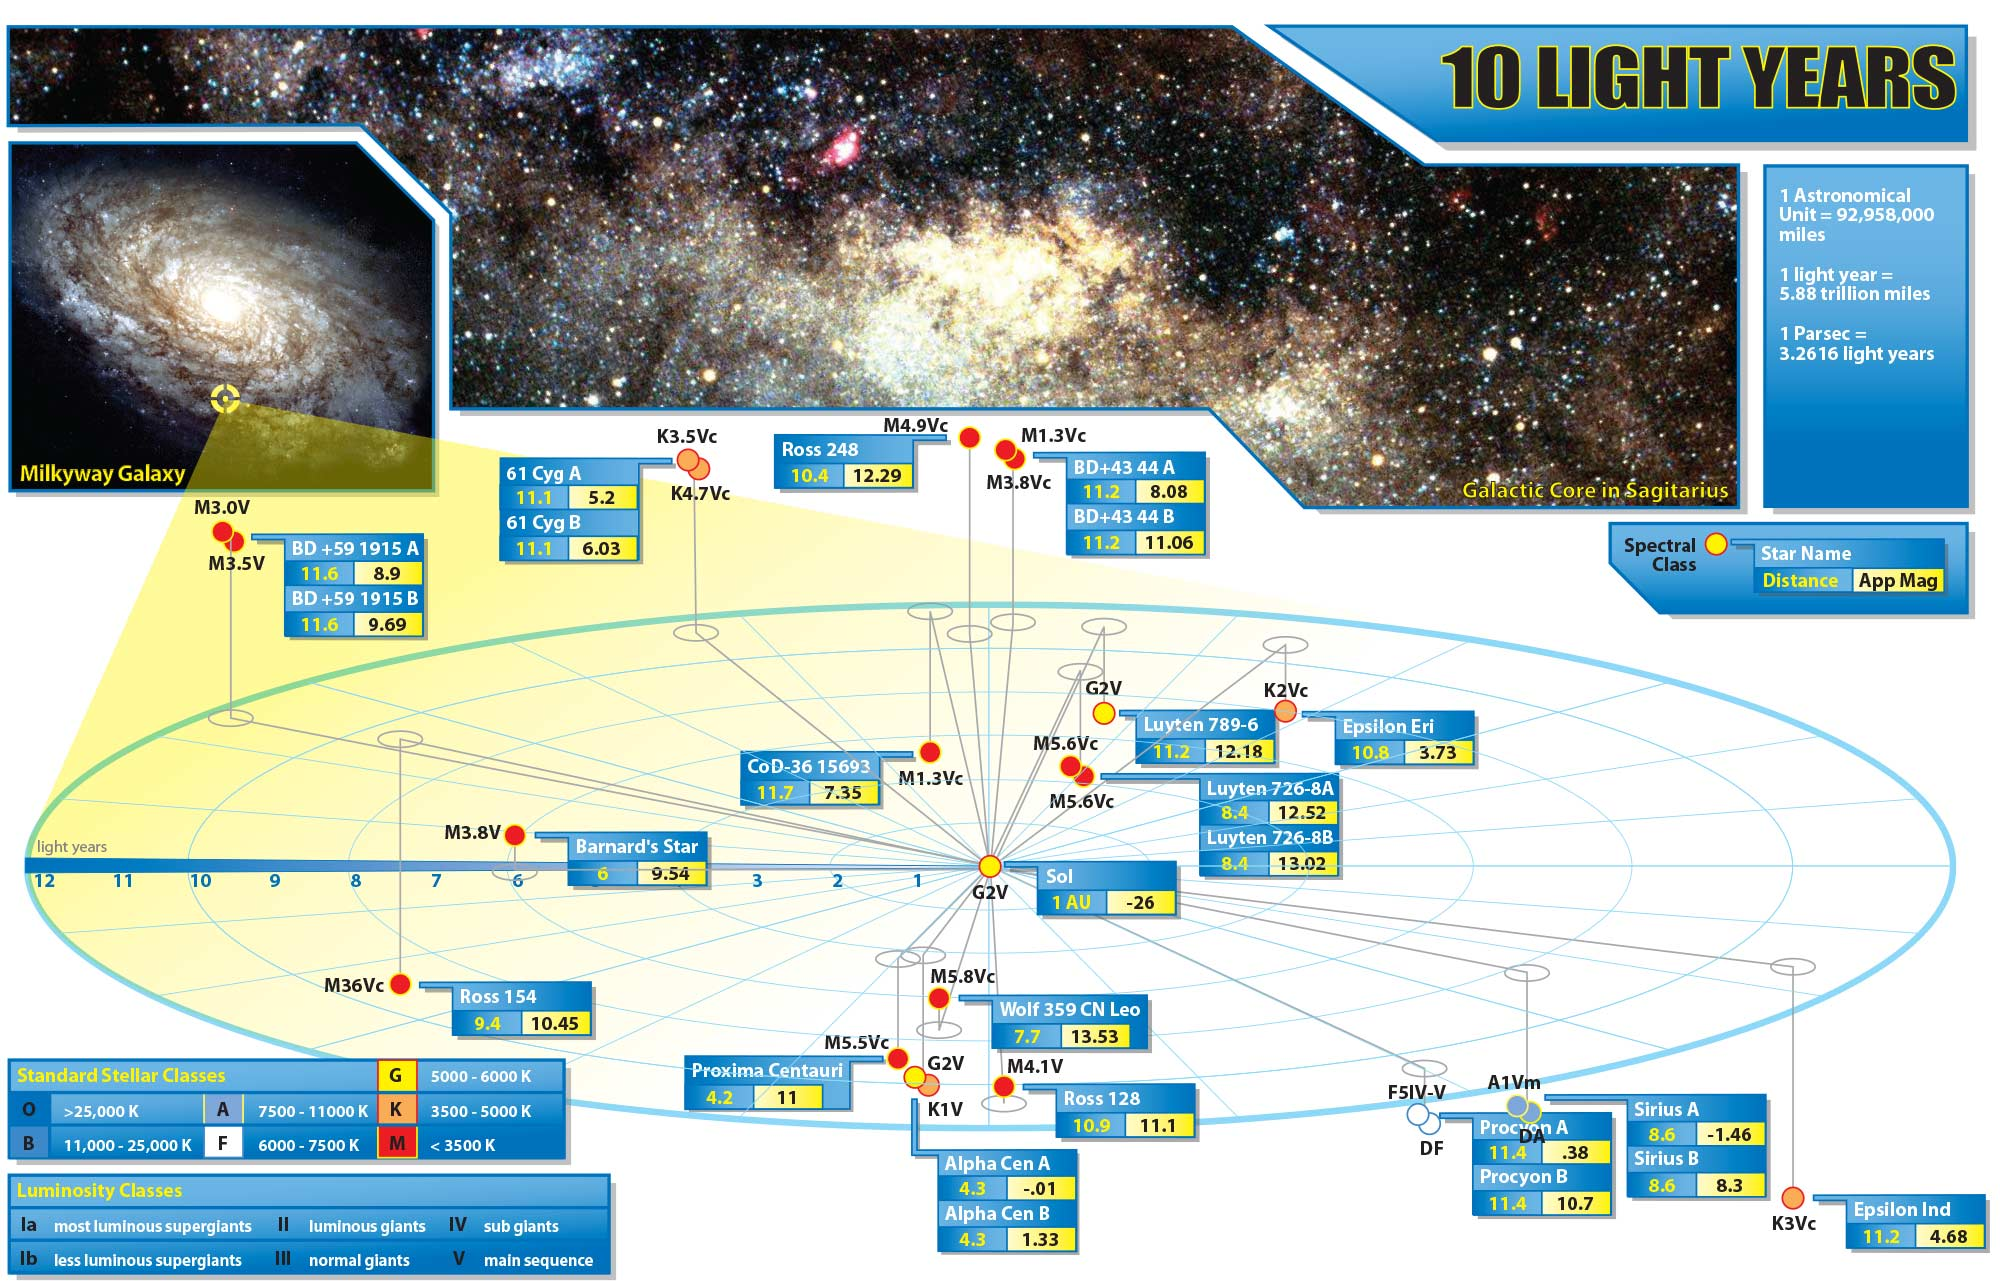 10 Light Years - A map of the closest stars